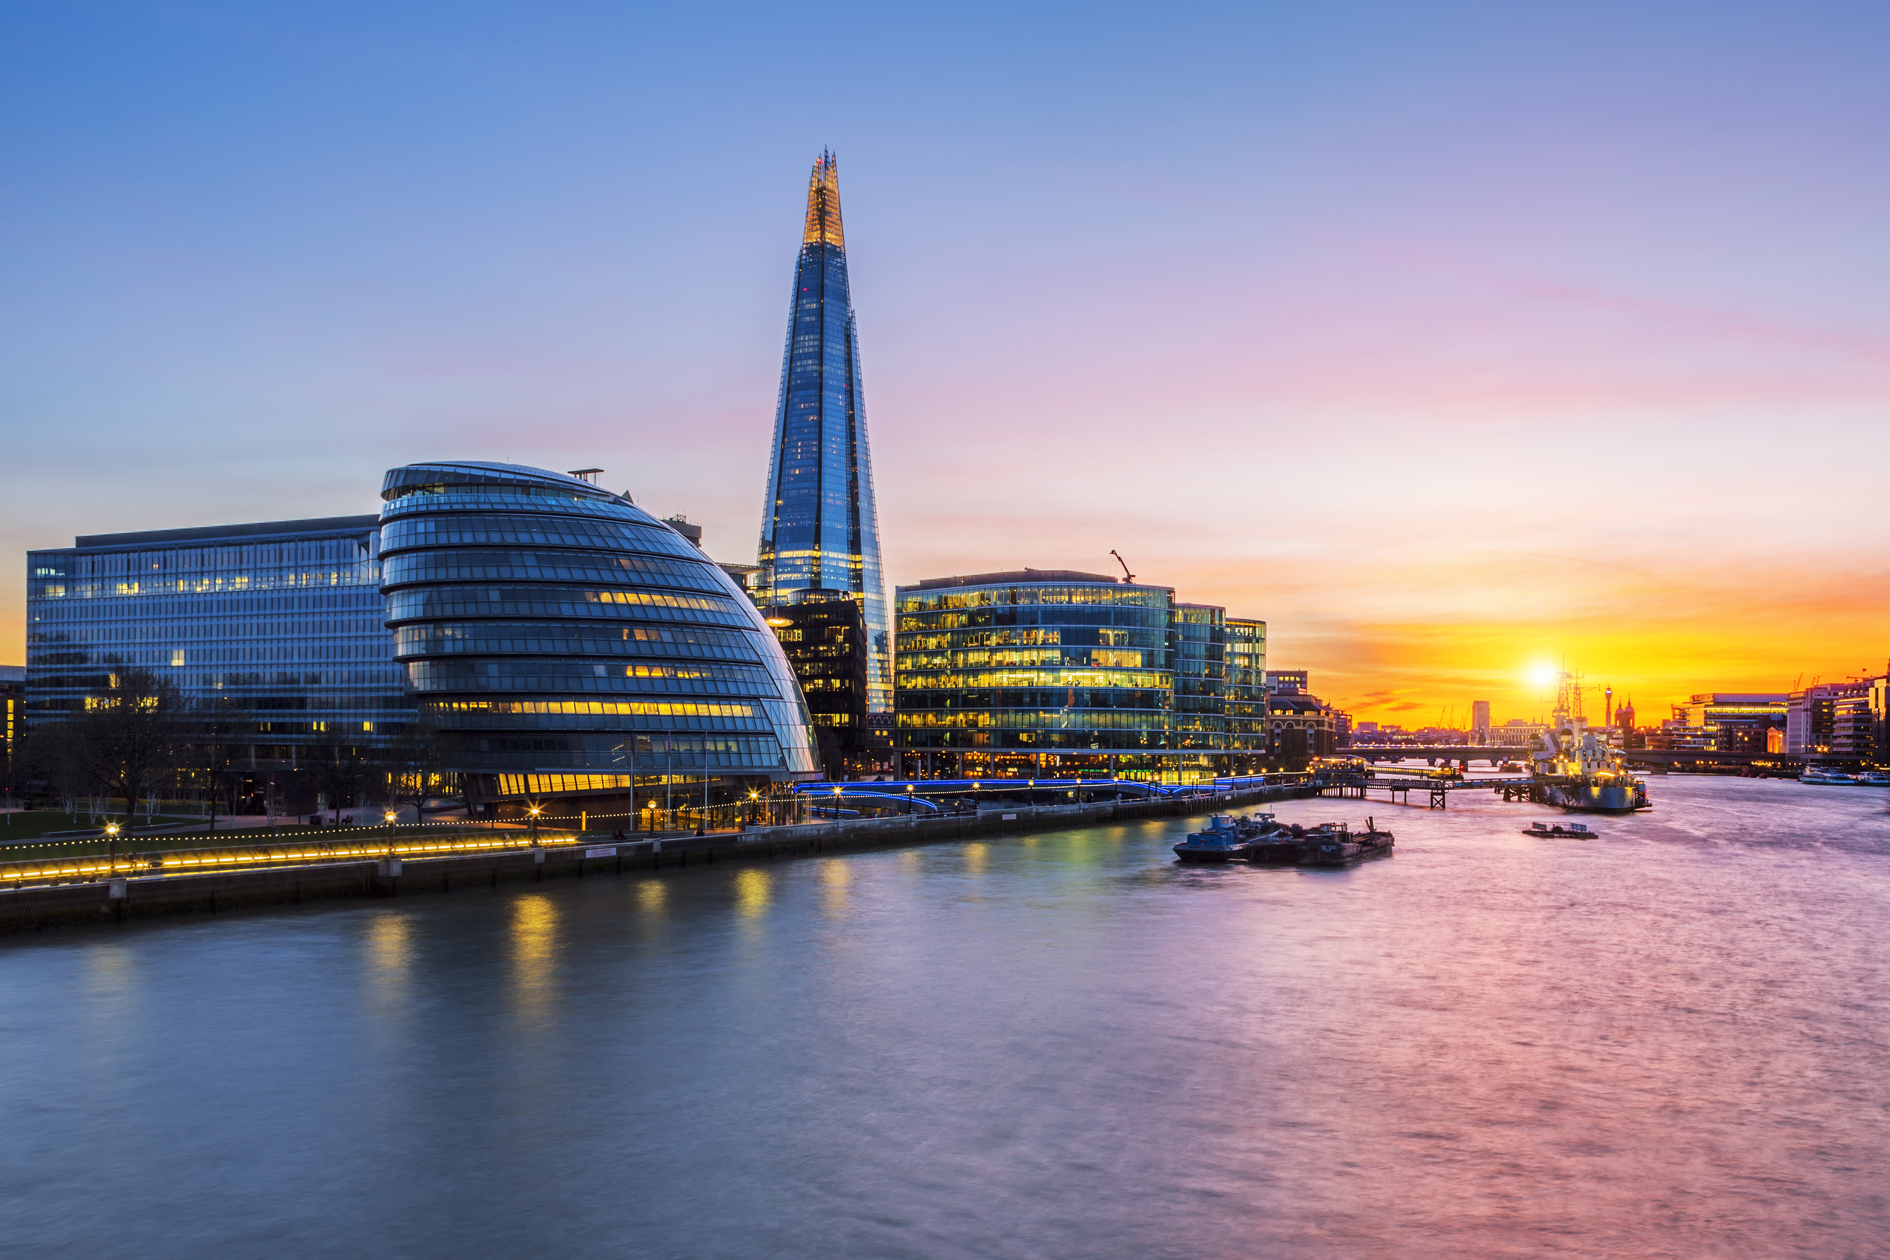 Travel and tourism can boom again in London